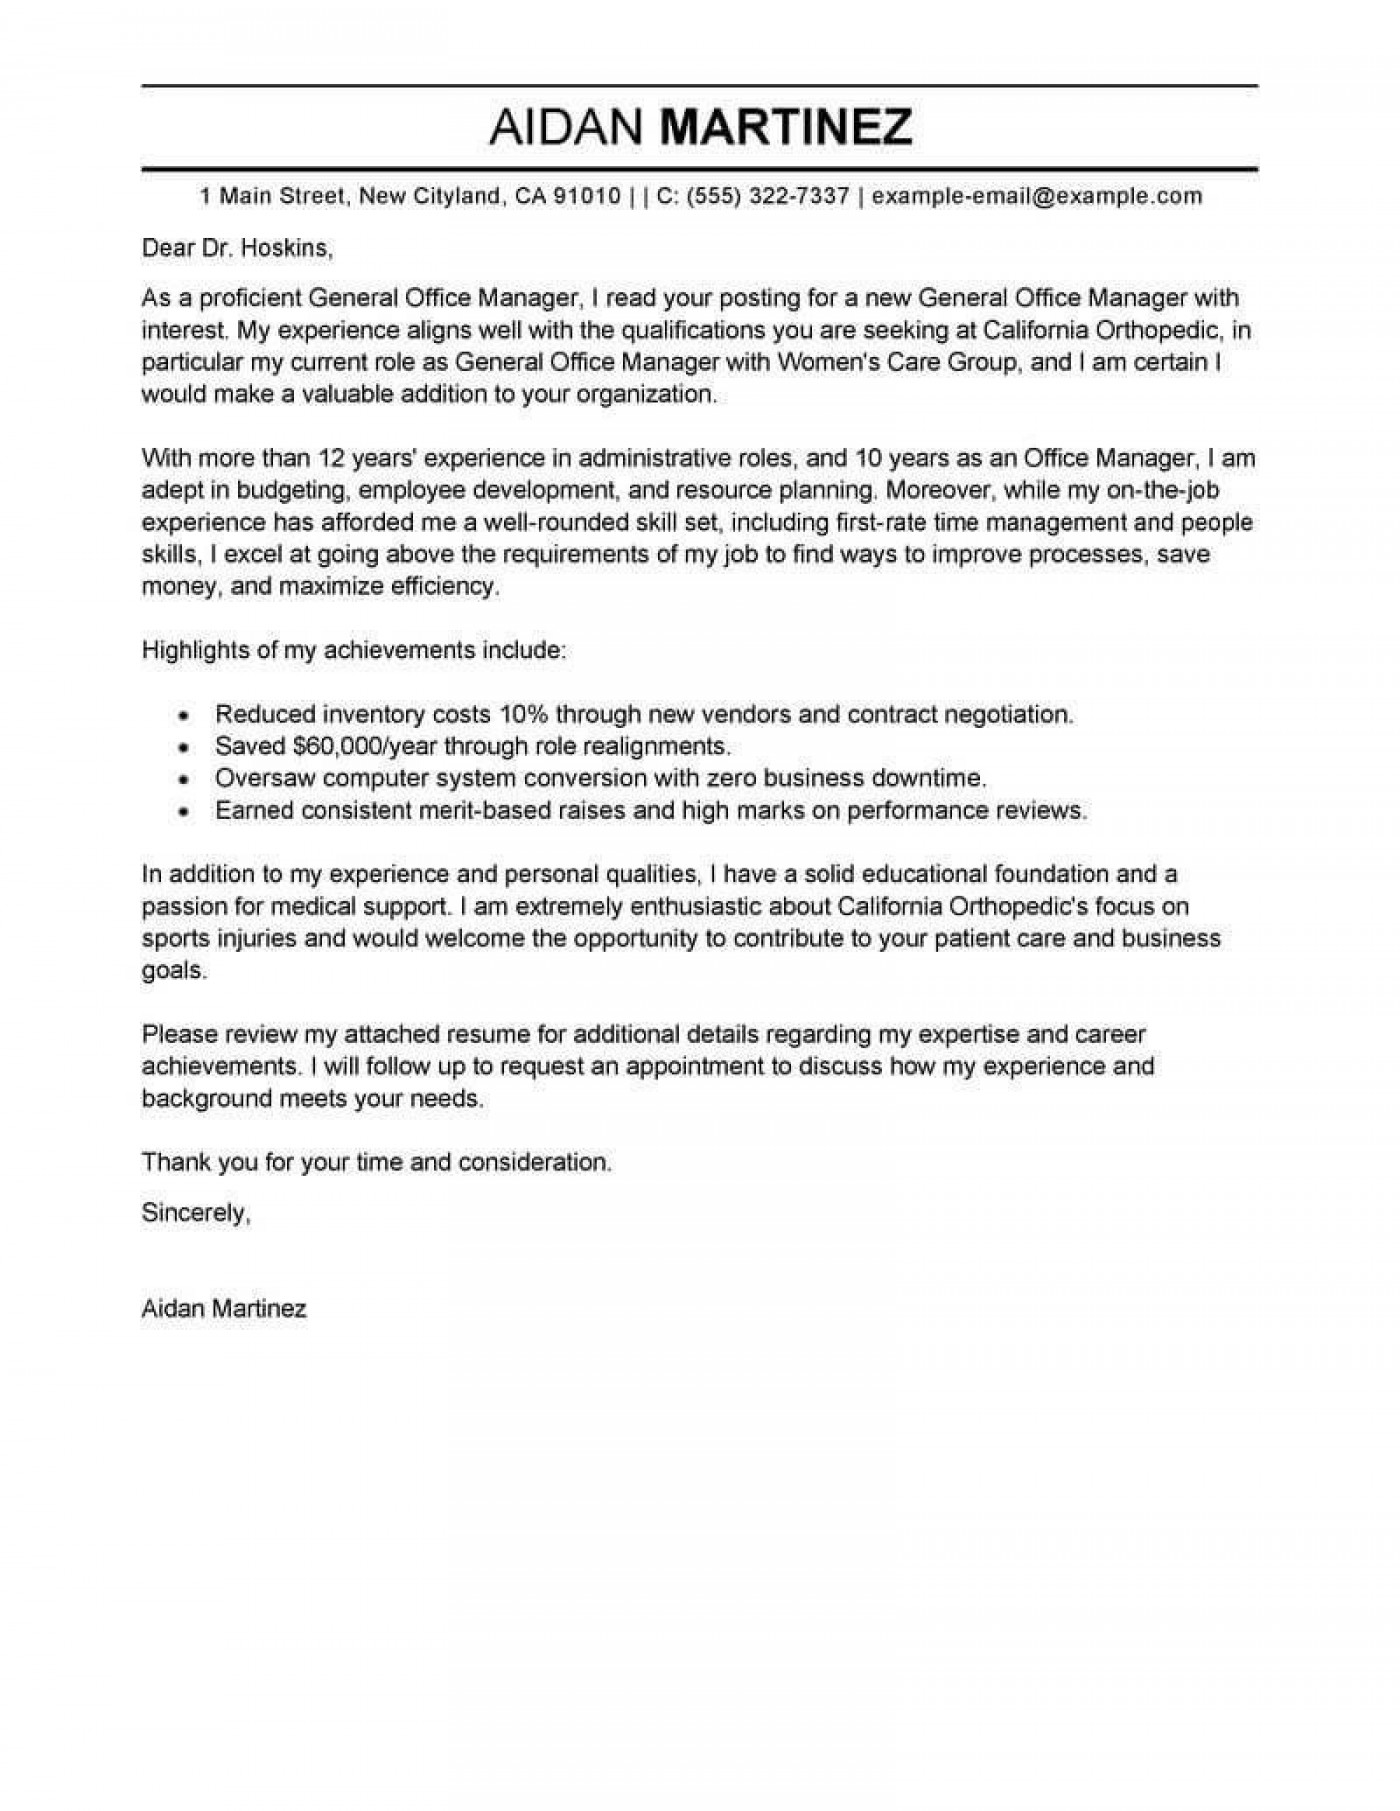 001 Excellent General Manager Cover Letter Template Sample  Hotel1400